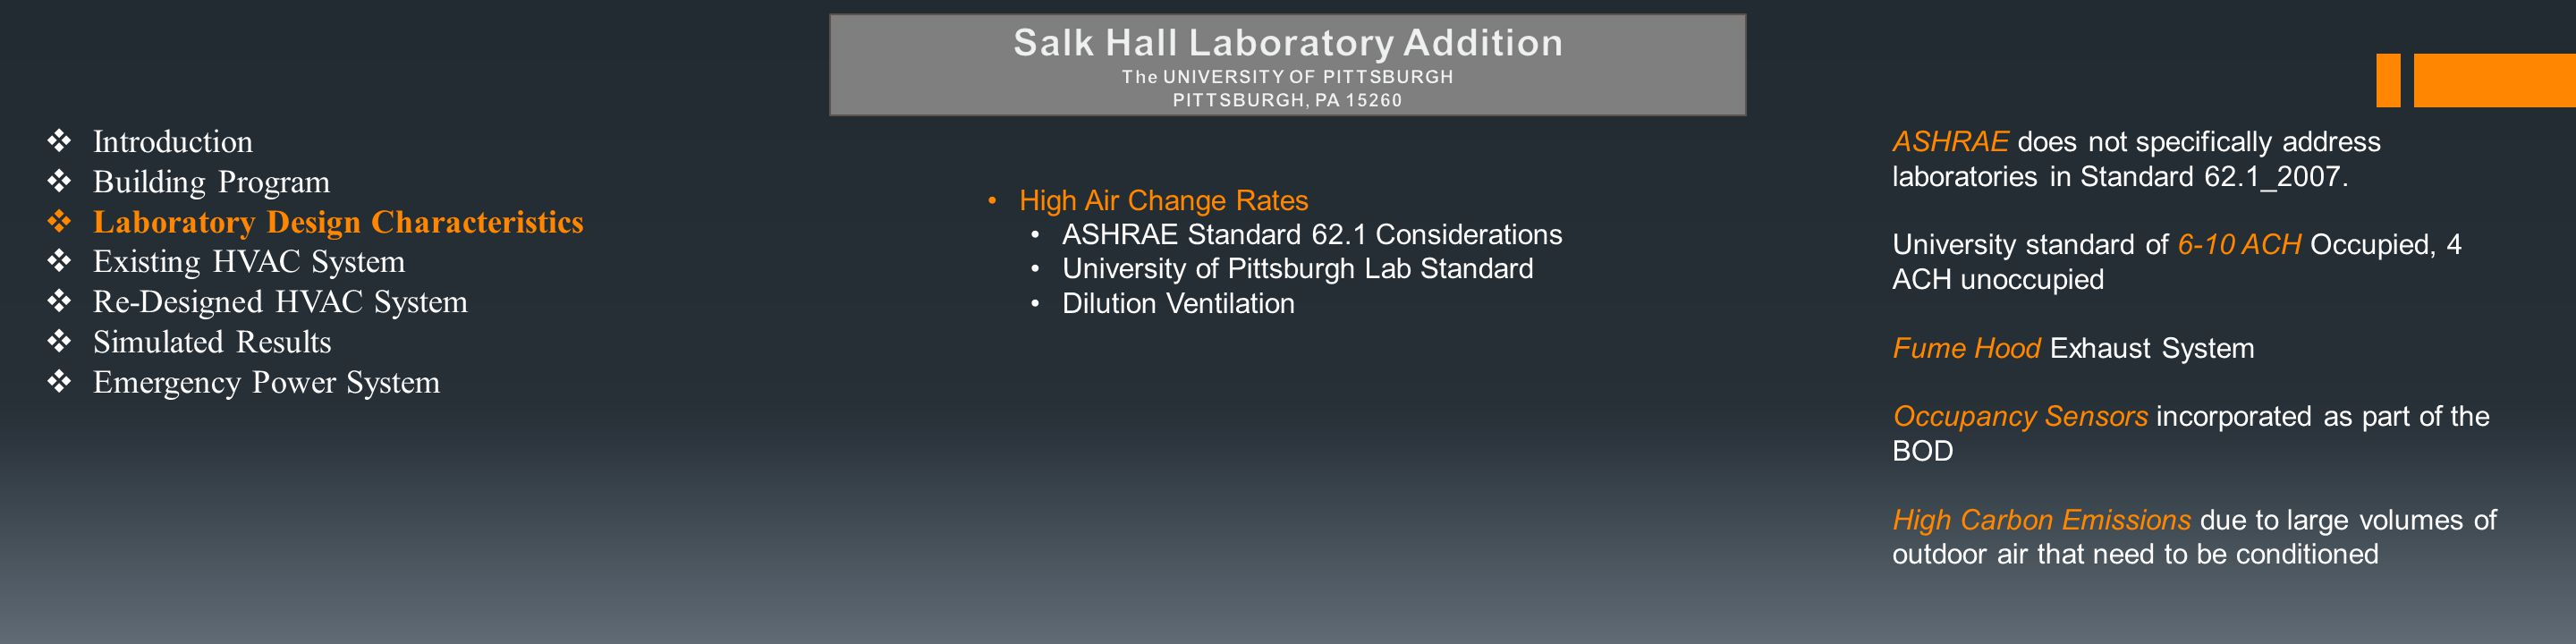  Introduction  Building Program  Laboratory Design Characteristics  Existing HVAC System  Re-Designed HVAC System  Simulated Results  Emergency Power System High Air Change Rates ASHRAE Standard 62.1 Considerations University of Pittsburgh Lab Standard Dilution Ventilation ASHRAE does not specifically address laboratories in Standard 62.1_2007.